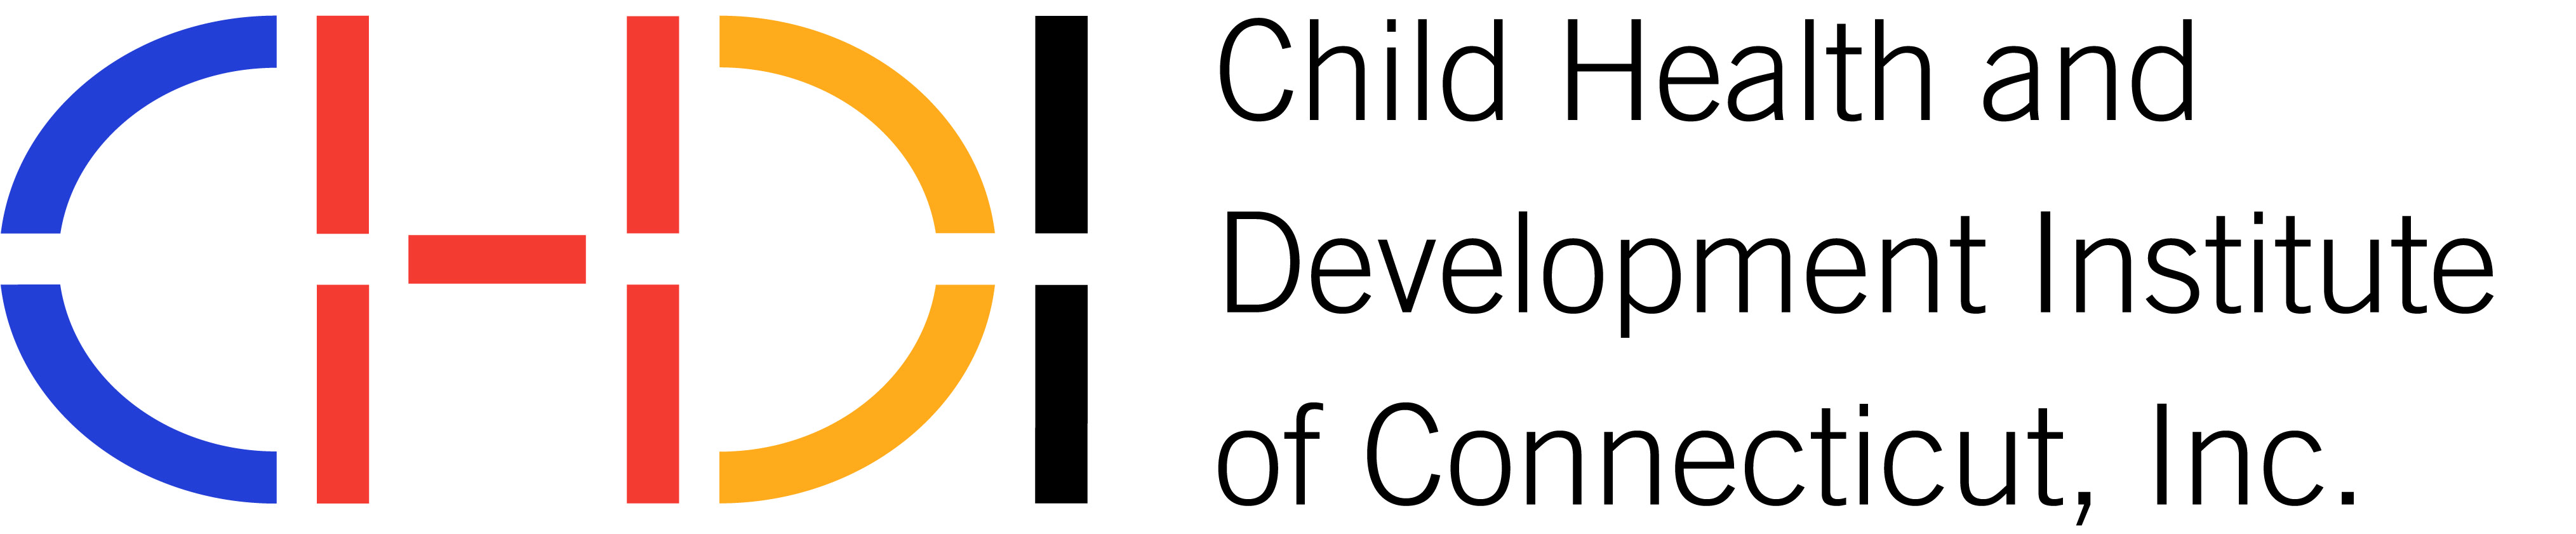 Child Health and Development Institute of Connecticut, Inc.